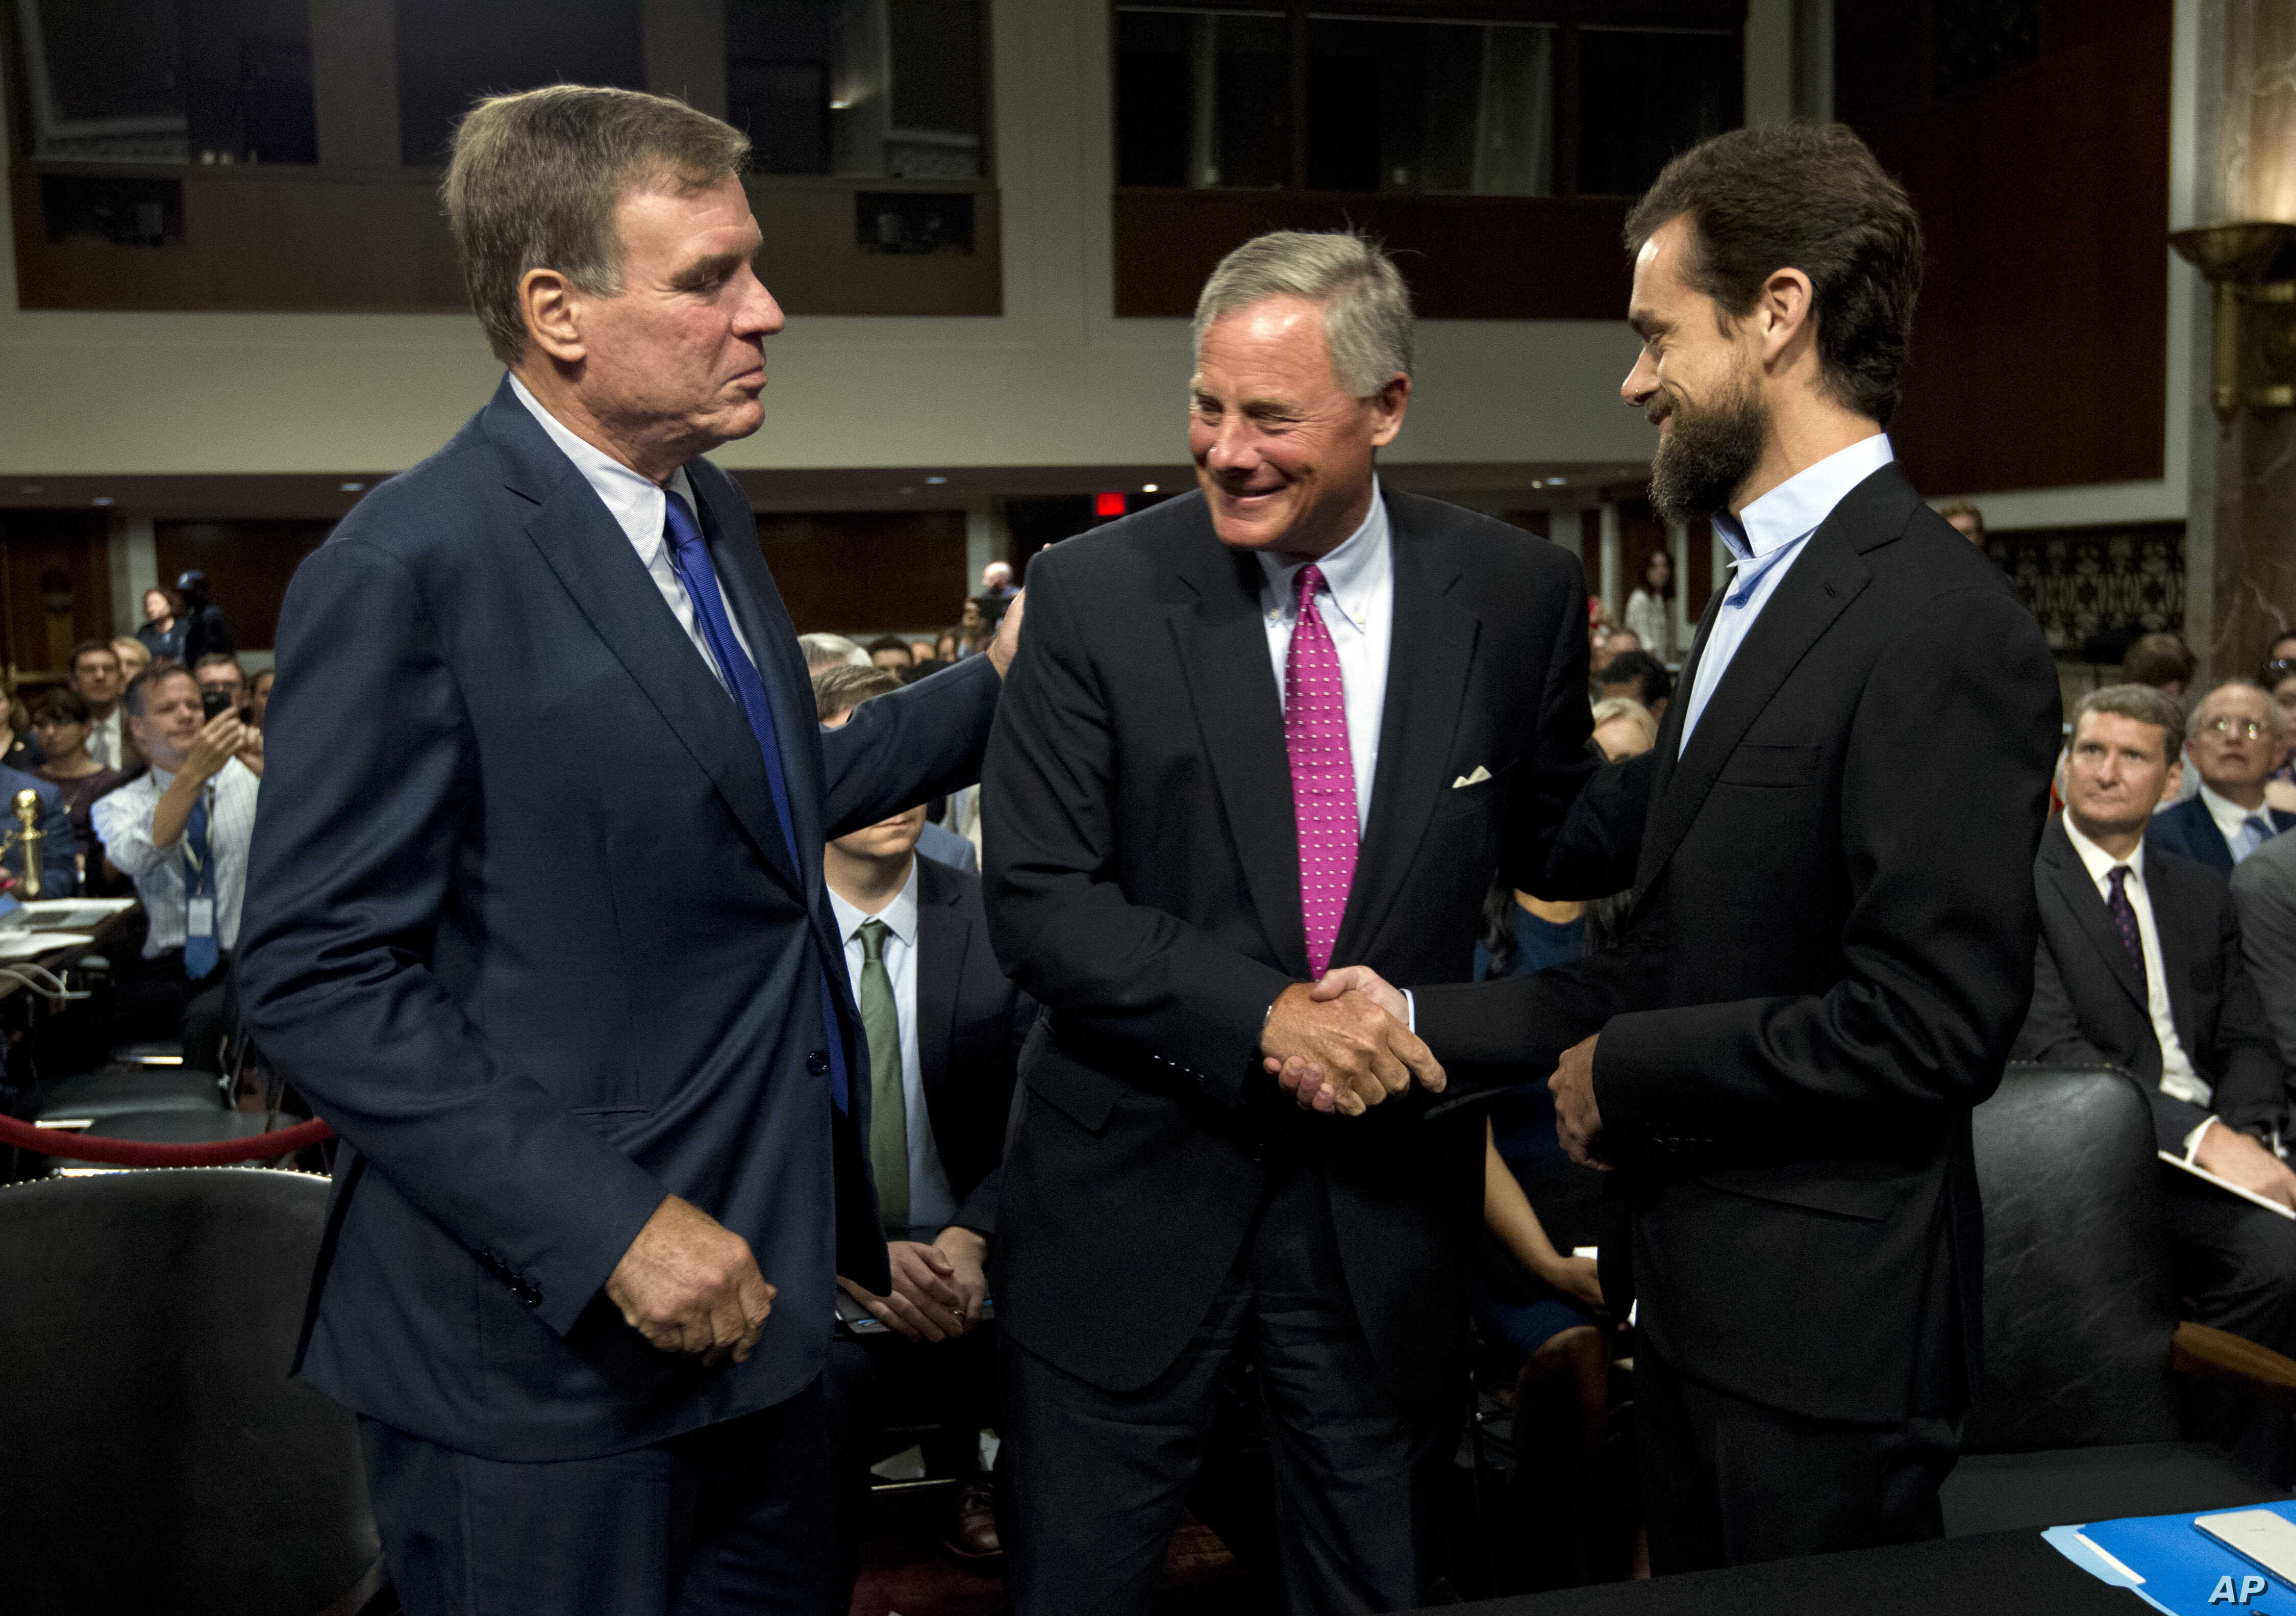 Senate Intelligence Committee Vice Chairman Mark Warner, D-Va., (L) and Chairman Sen. Richard Burr, R-N.C. (C) greet Twitter CEO Jack Dorsey before he testifies before the Senate Intelligence Committee hearing on 'Foreign Influence Operations and The...